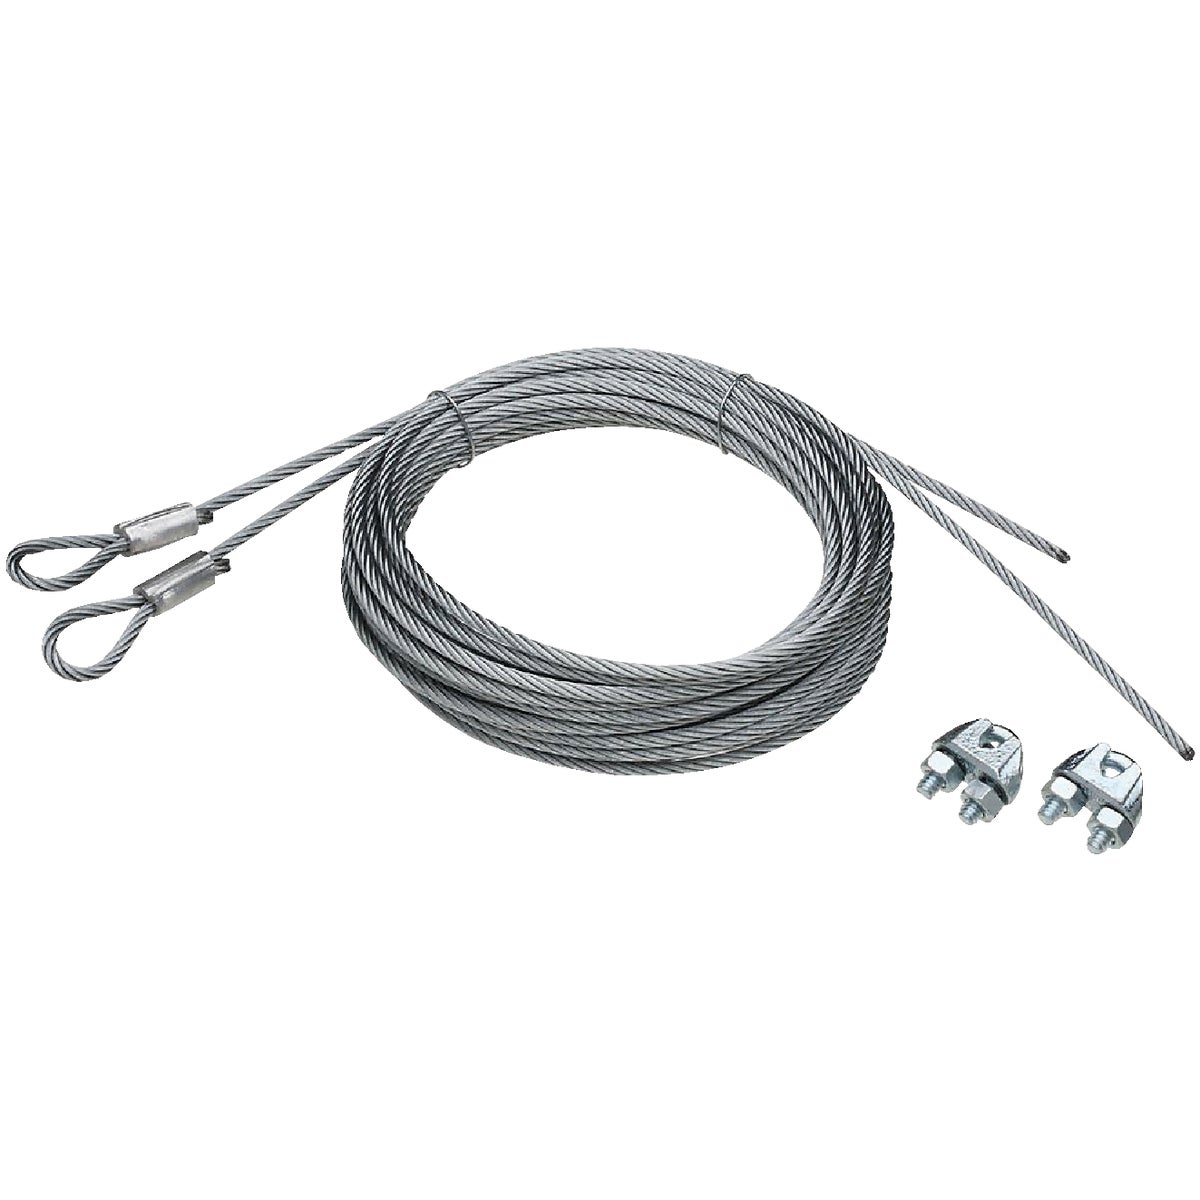 14' HD EXTENSION CABLE - N280339 by National Mfg Co